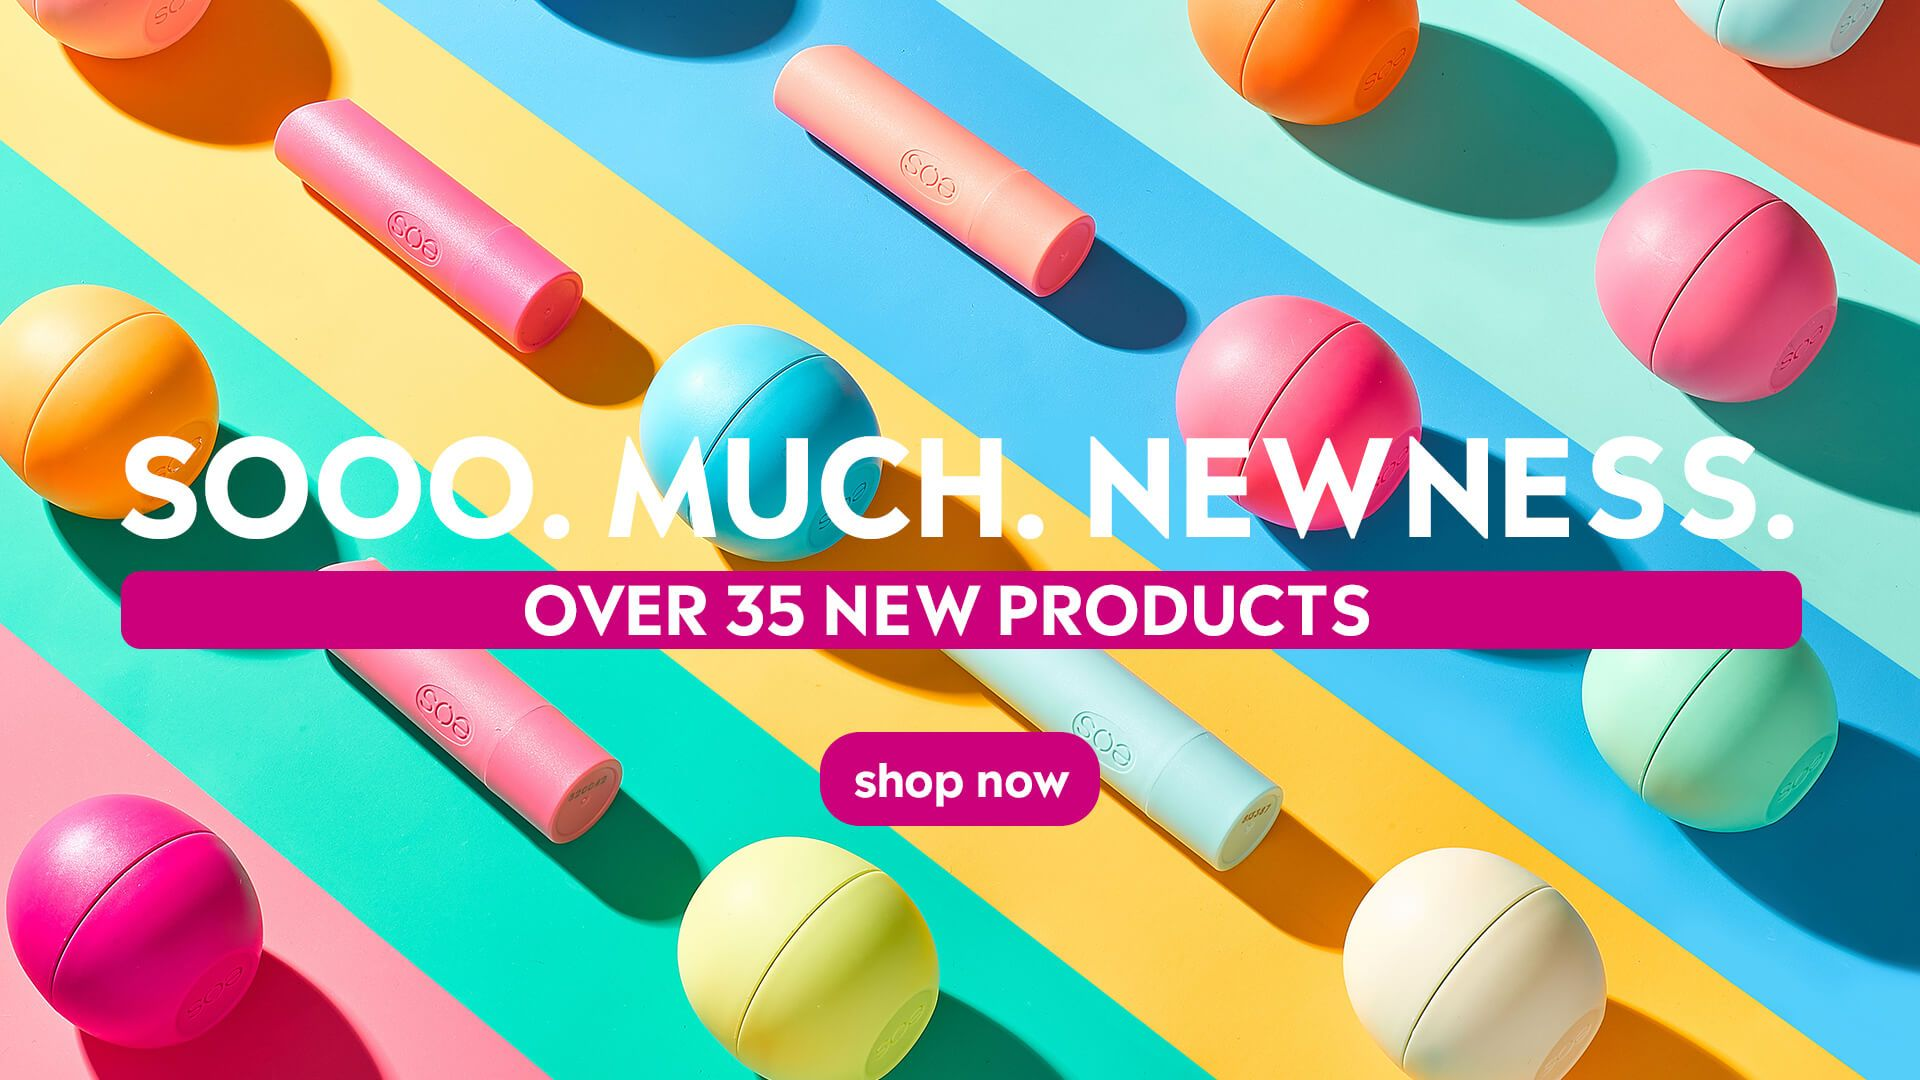 So much new. Over 35 new products!